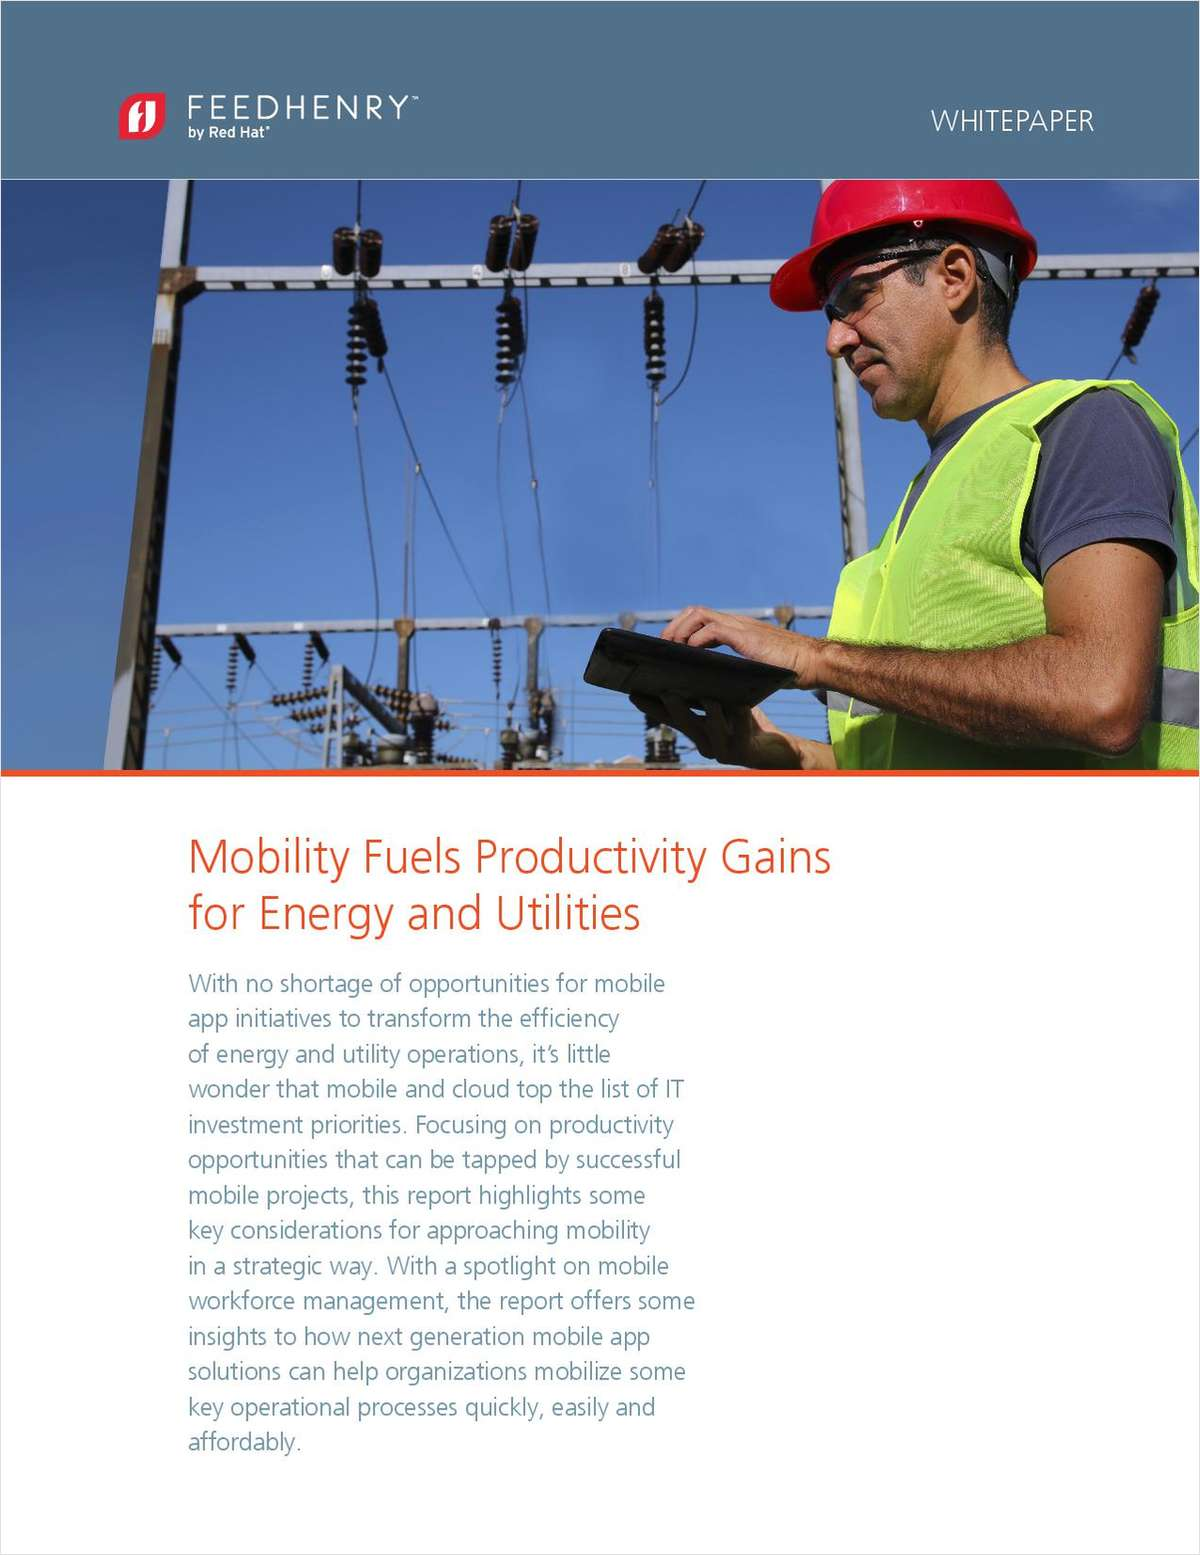 5 Considerations: Mobility Fuels Productivity Gains for Energy & Utilities